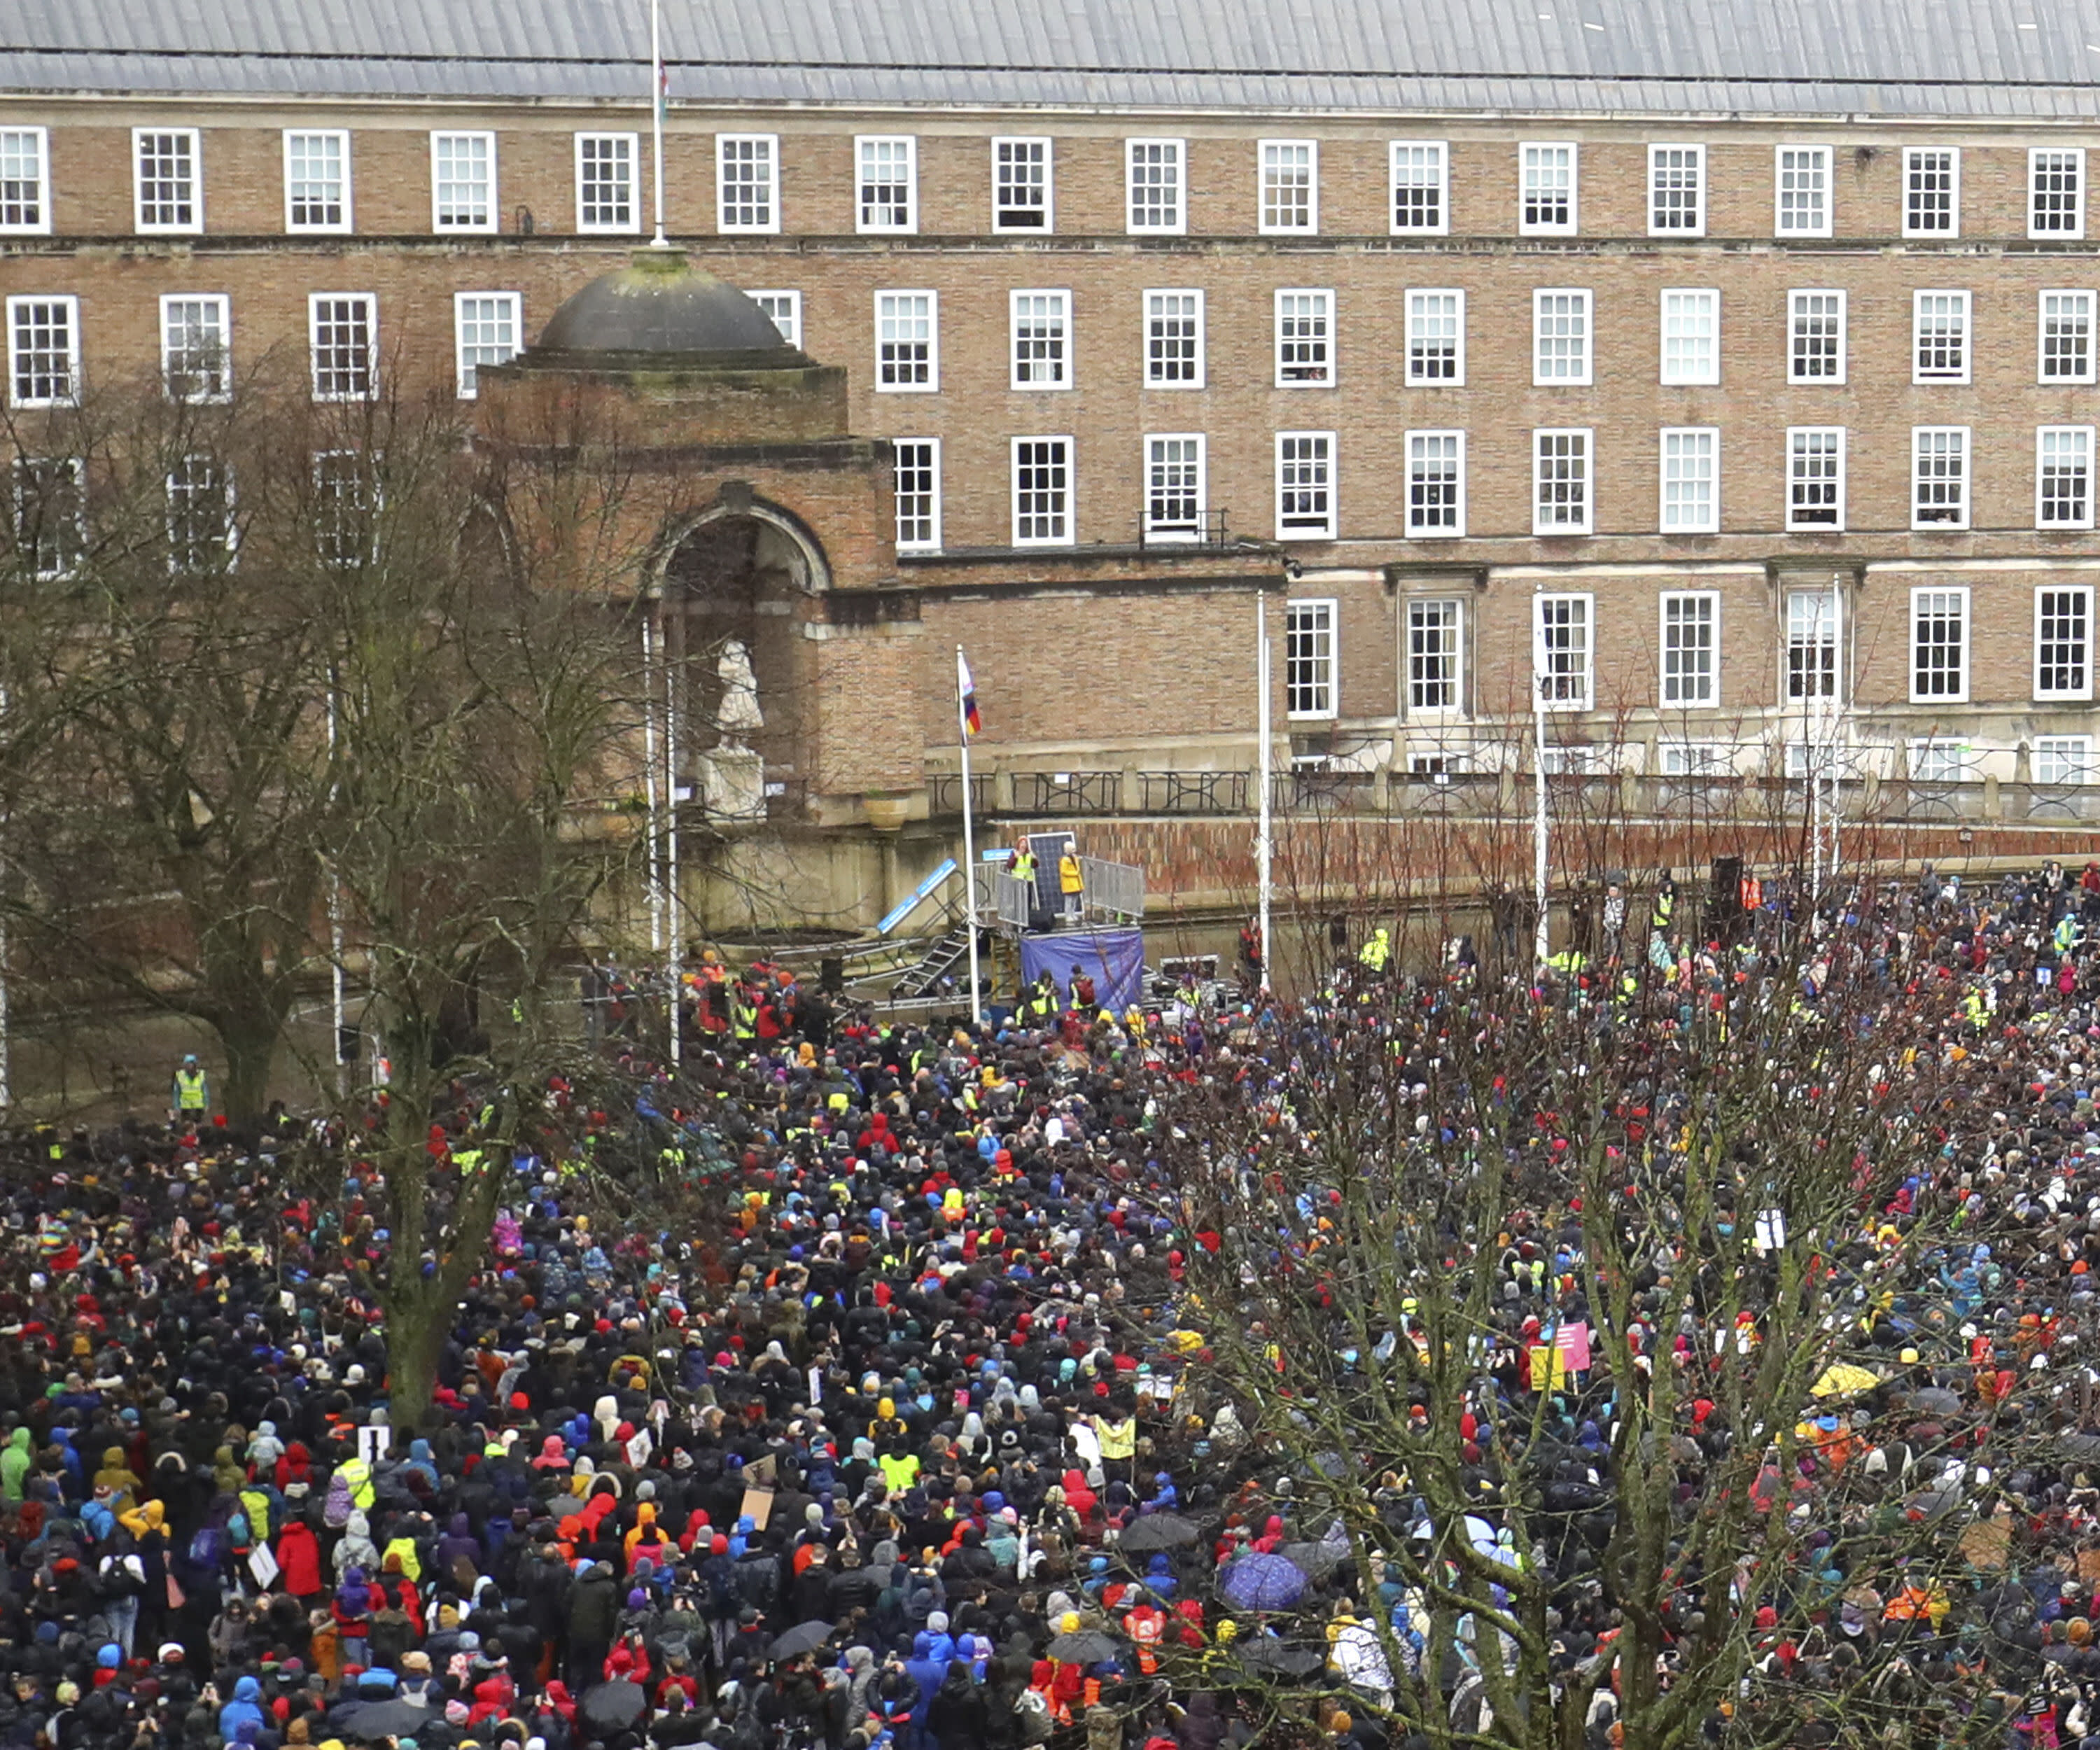 Greta Thunberg takes to the stage as environmental activists gather for the Bristol Youth Strike 4 Climate protest at College Green in Bristol, England, Friday, Feb. 28, 2020. (Aaron Chown/PA via AP)